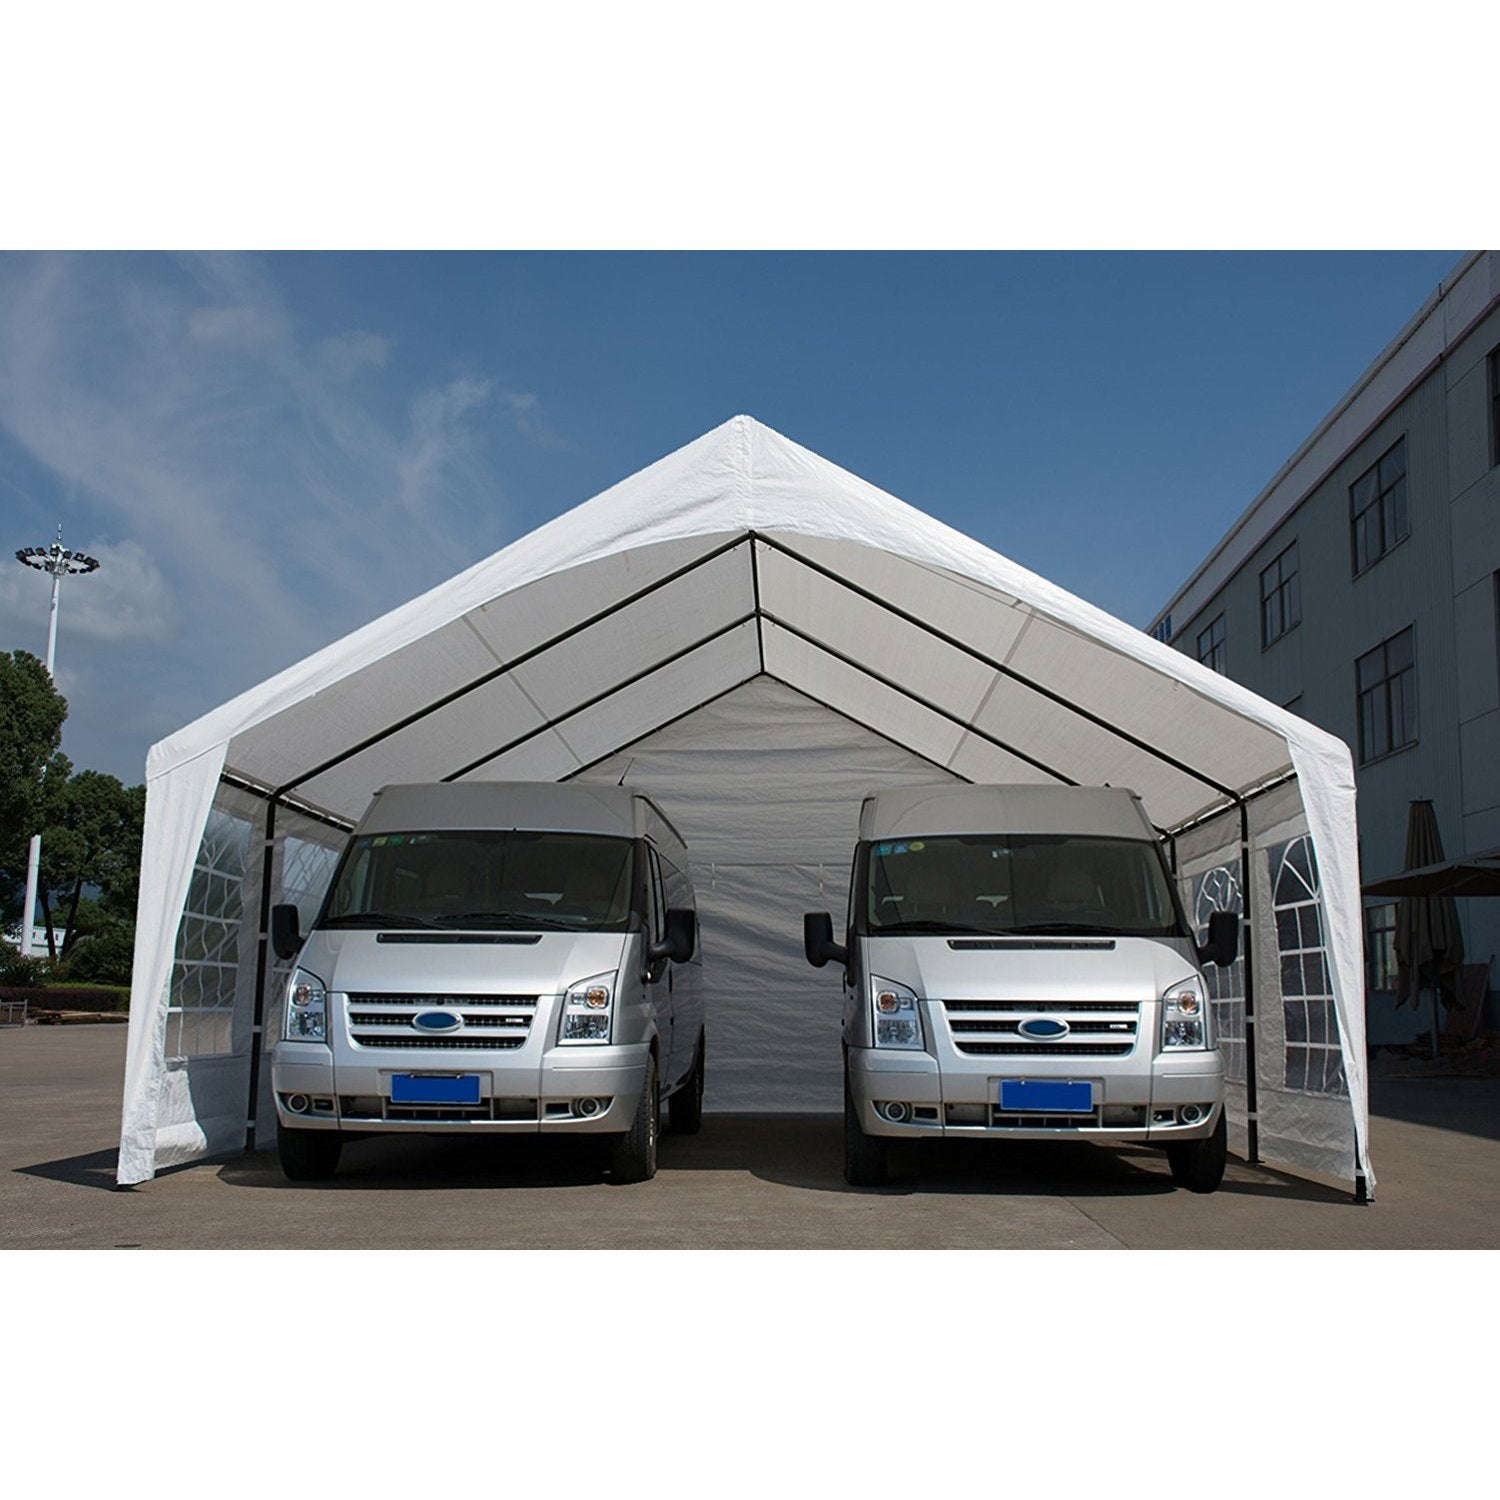 Abba Patio 20 x 20 feet Heavy Duty Domain Carport Car Canopy Storage with Steel Legs and Sidewalls White - Free Shipping Today - Overstock.com - 21501900  sc 1 st  Overstock.com & Abba Patio 20 x 20 feet Heavy Duty Domain Carport Car Canopy ...